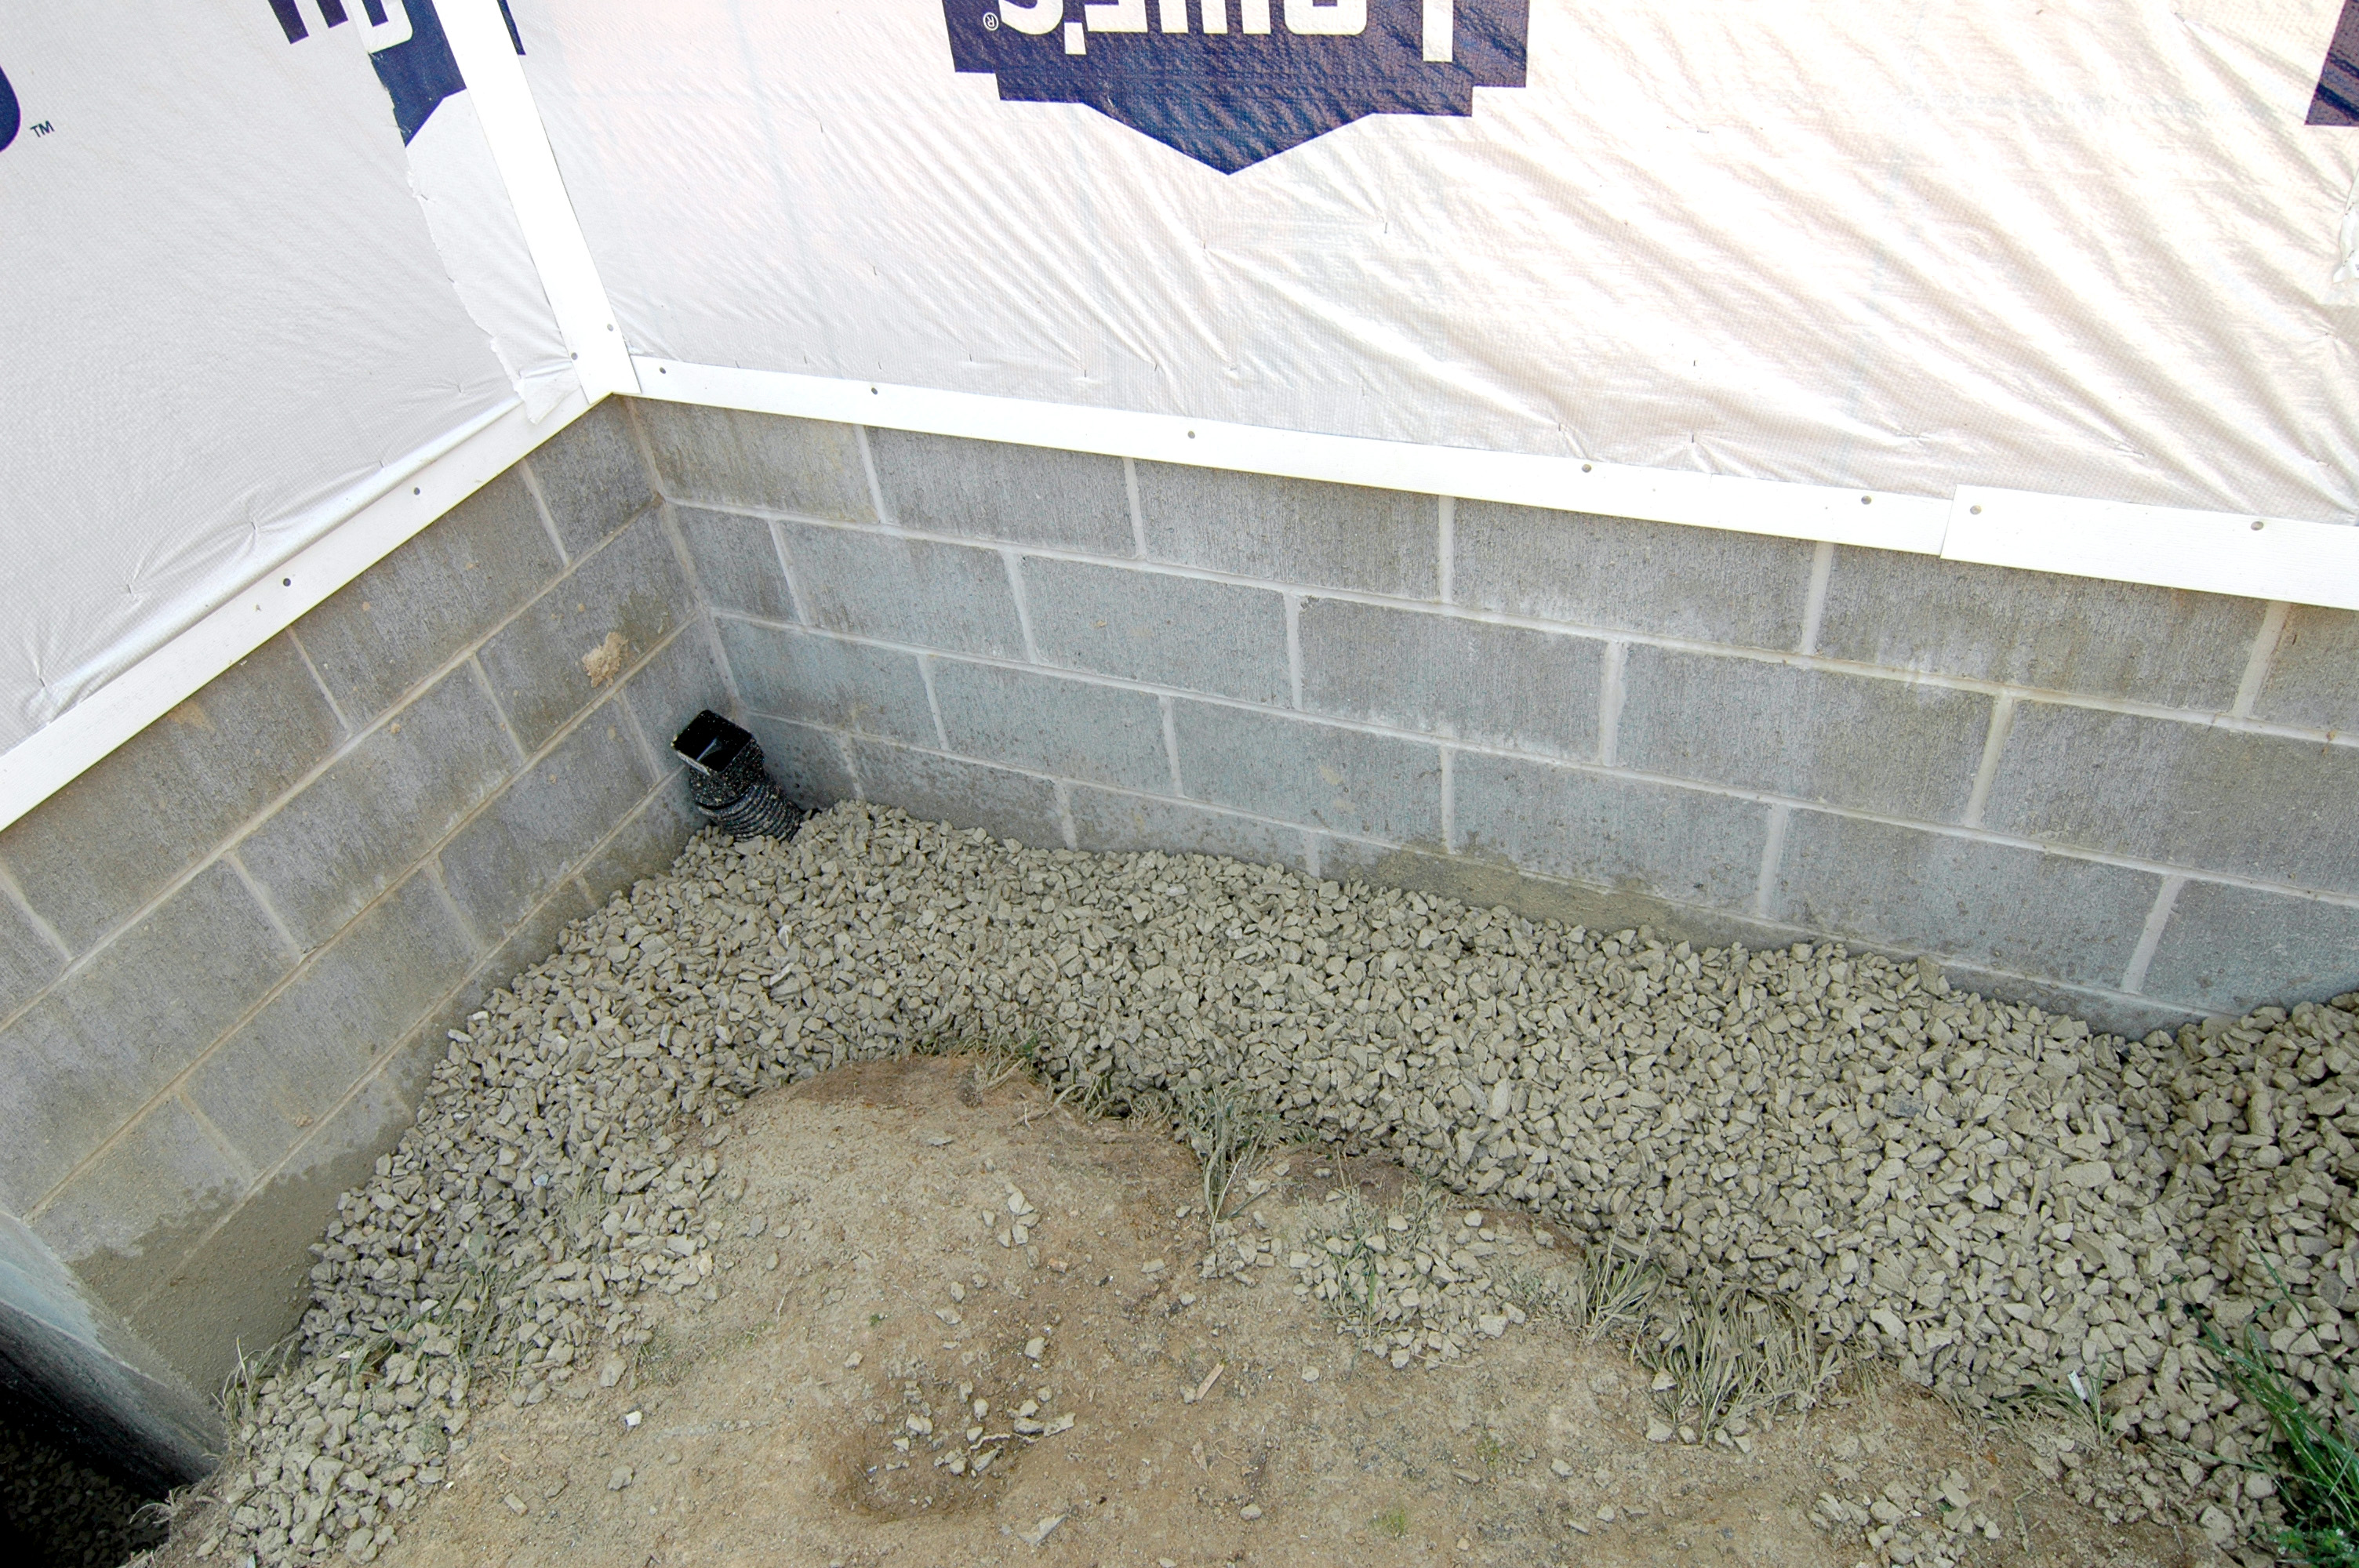 Garage Floor Tiles That Drain August 19 Gravel For Garage Floor And Perimeter Drain Ken S